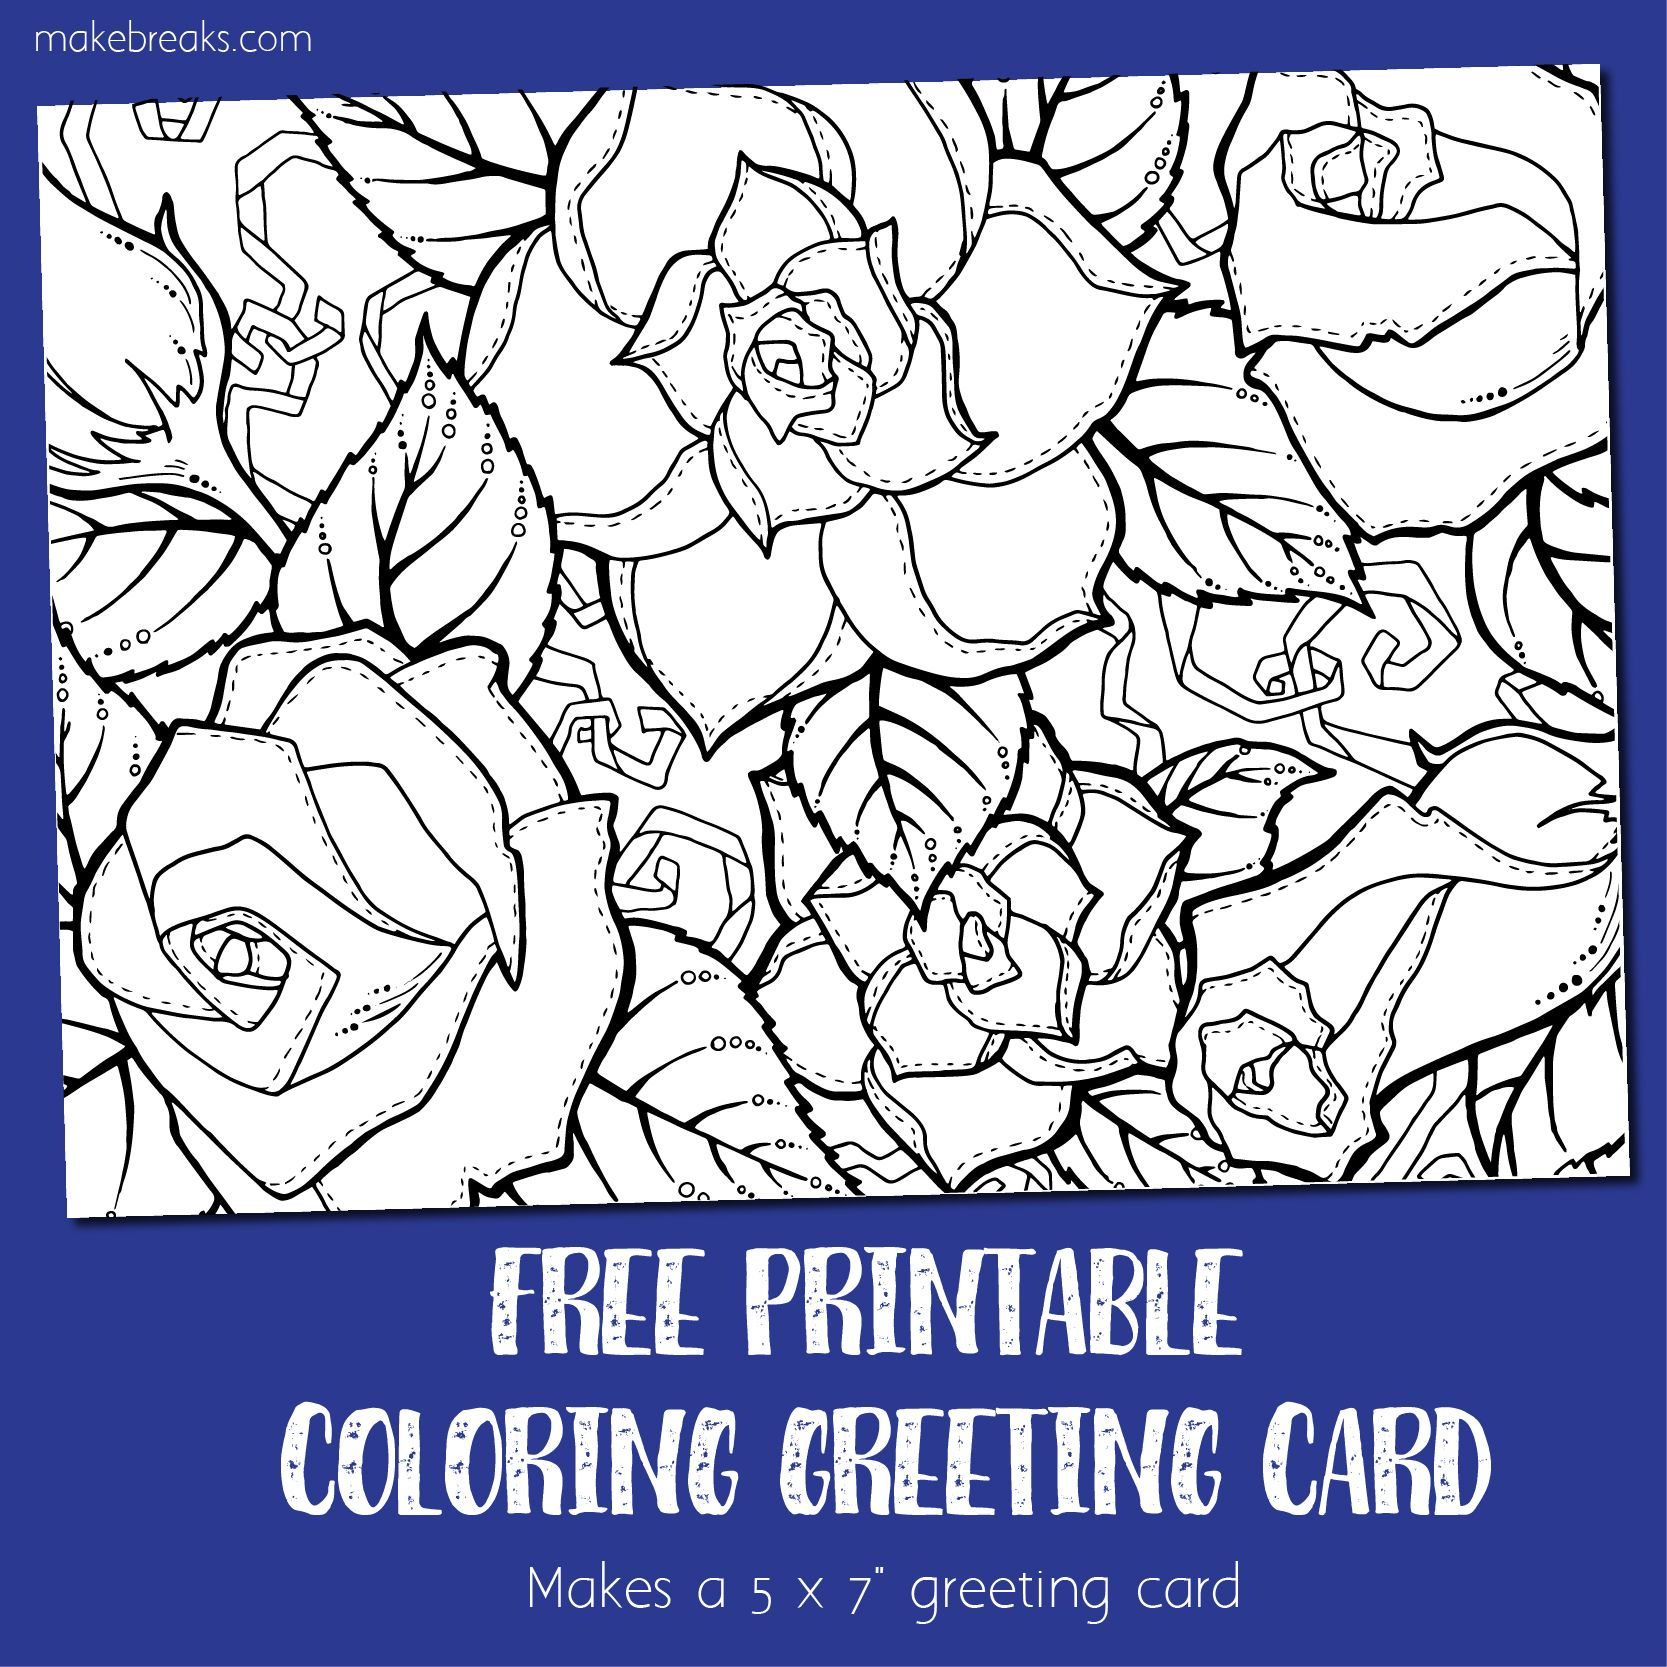 Coloring card 3 greeting card to color roses color card coloring card 3 greeting card to color roses m4hsunfo